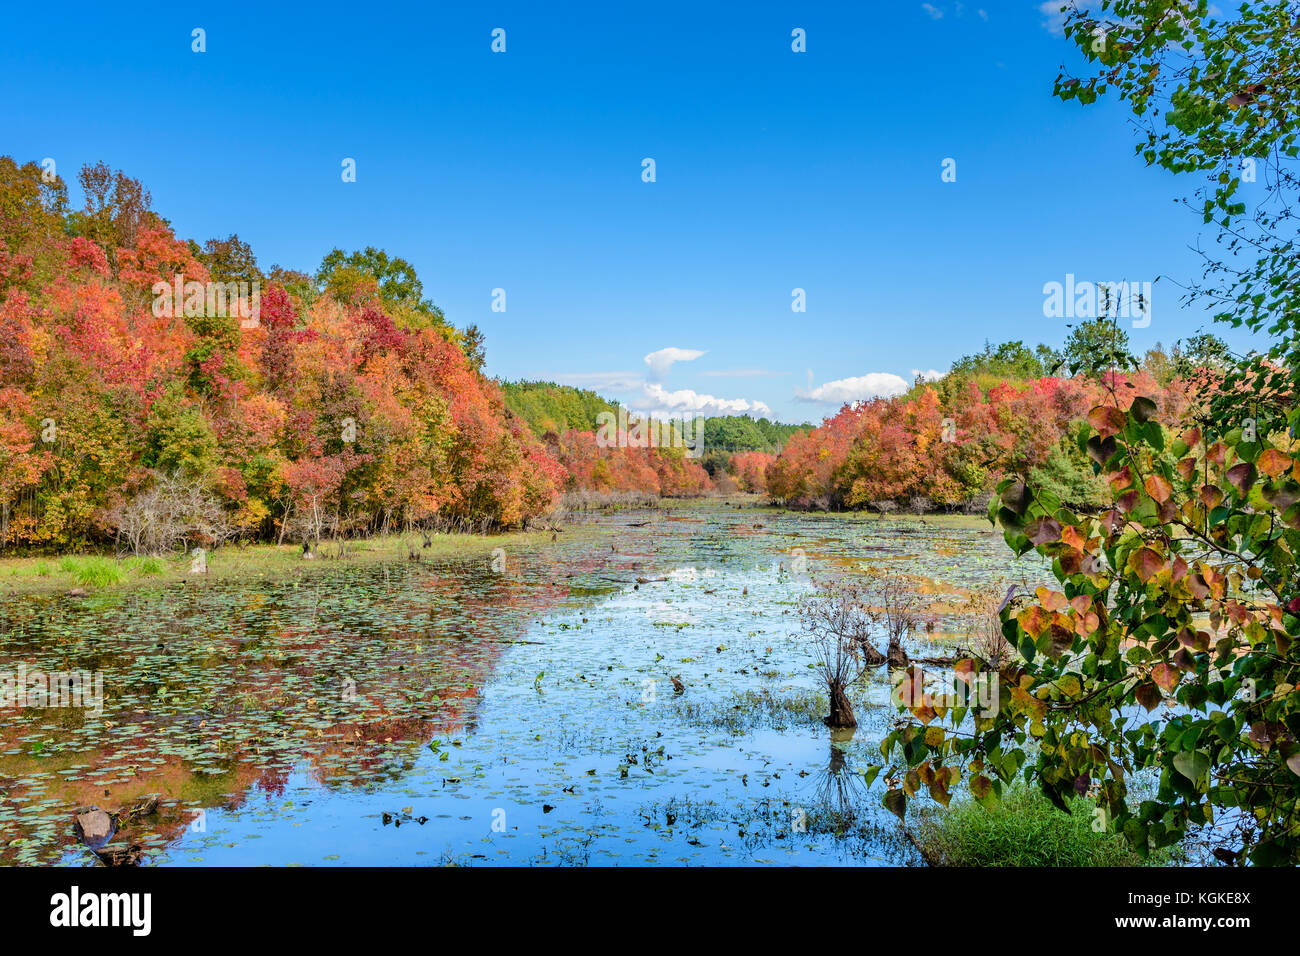 Autumn or Fall colors on a small lake in south central Alabama, USA. - Stock Image